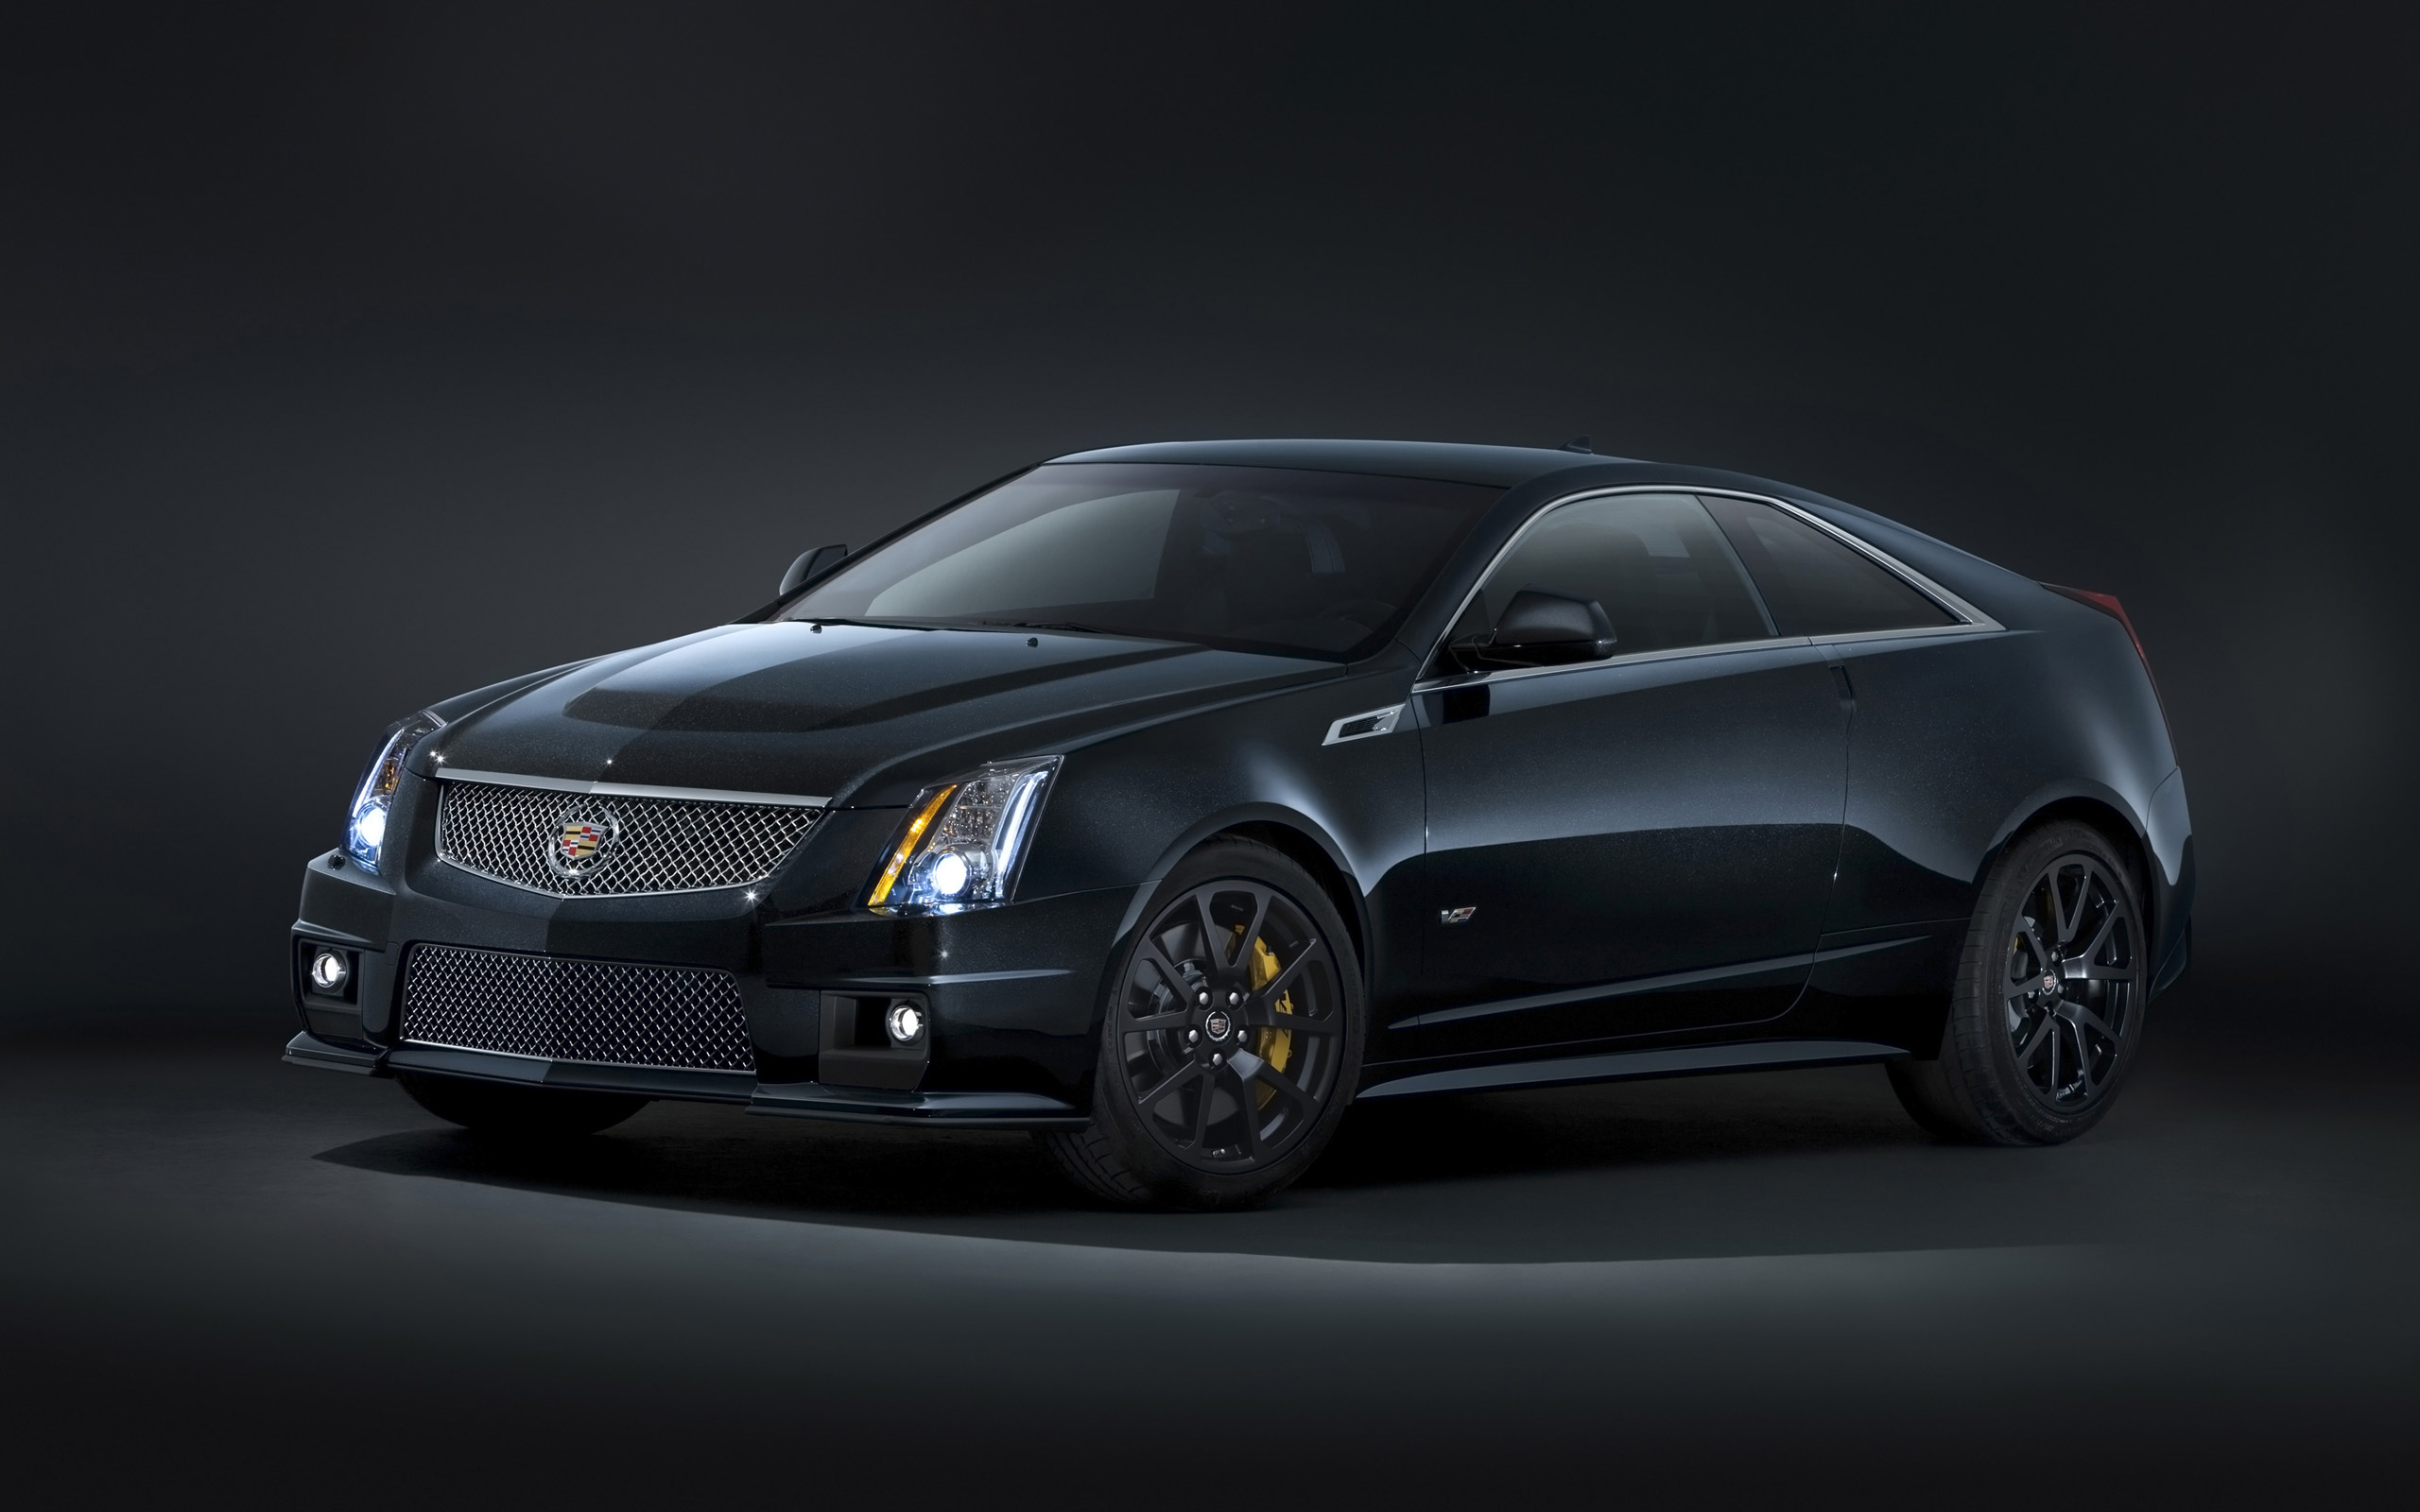 2014 Cadillac Cts V Coupe Wallpaper Hd Car Wallpapers Id 3750